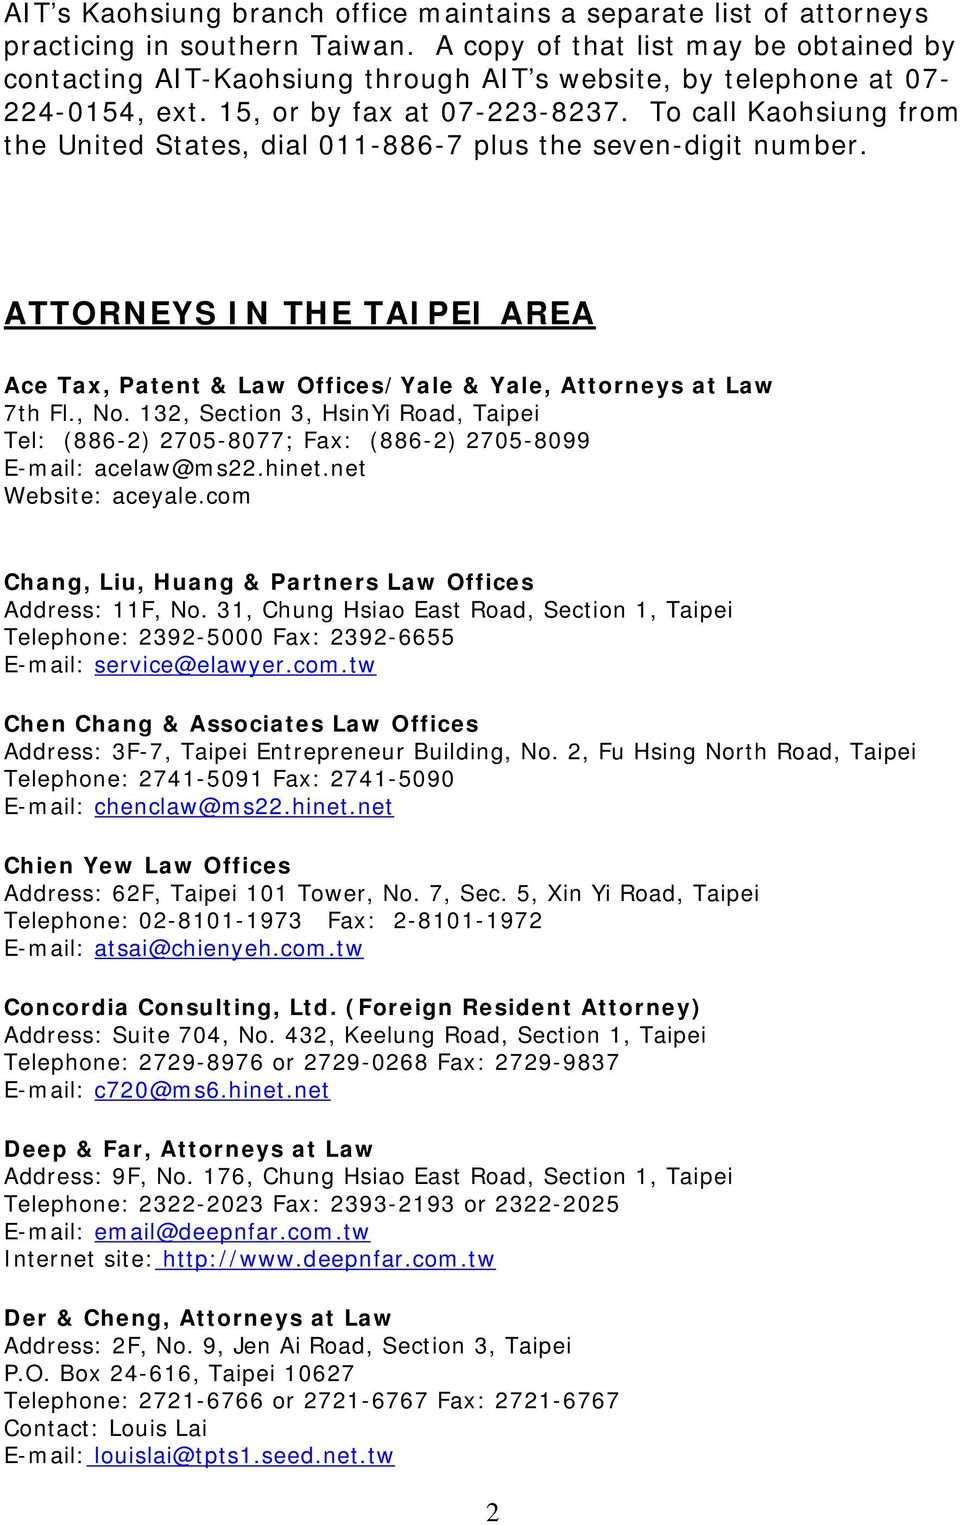 To call Kaohsiung from the United States, dial 011-886-7 plus the seven-digit number. ATTORNEYS IN THE TAIPEI AREA Ace Tax, Patent & Law Offices/Yale & Yale, Attorneys at Law 7th Fl., No.